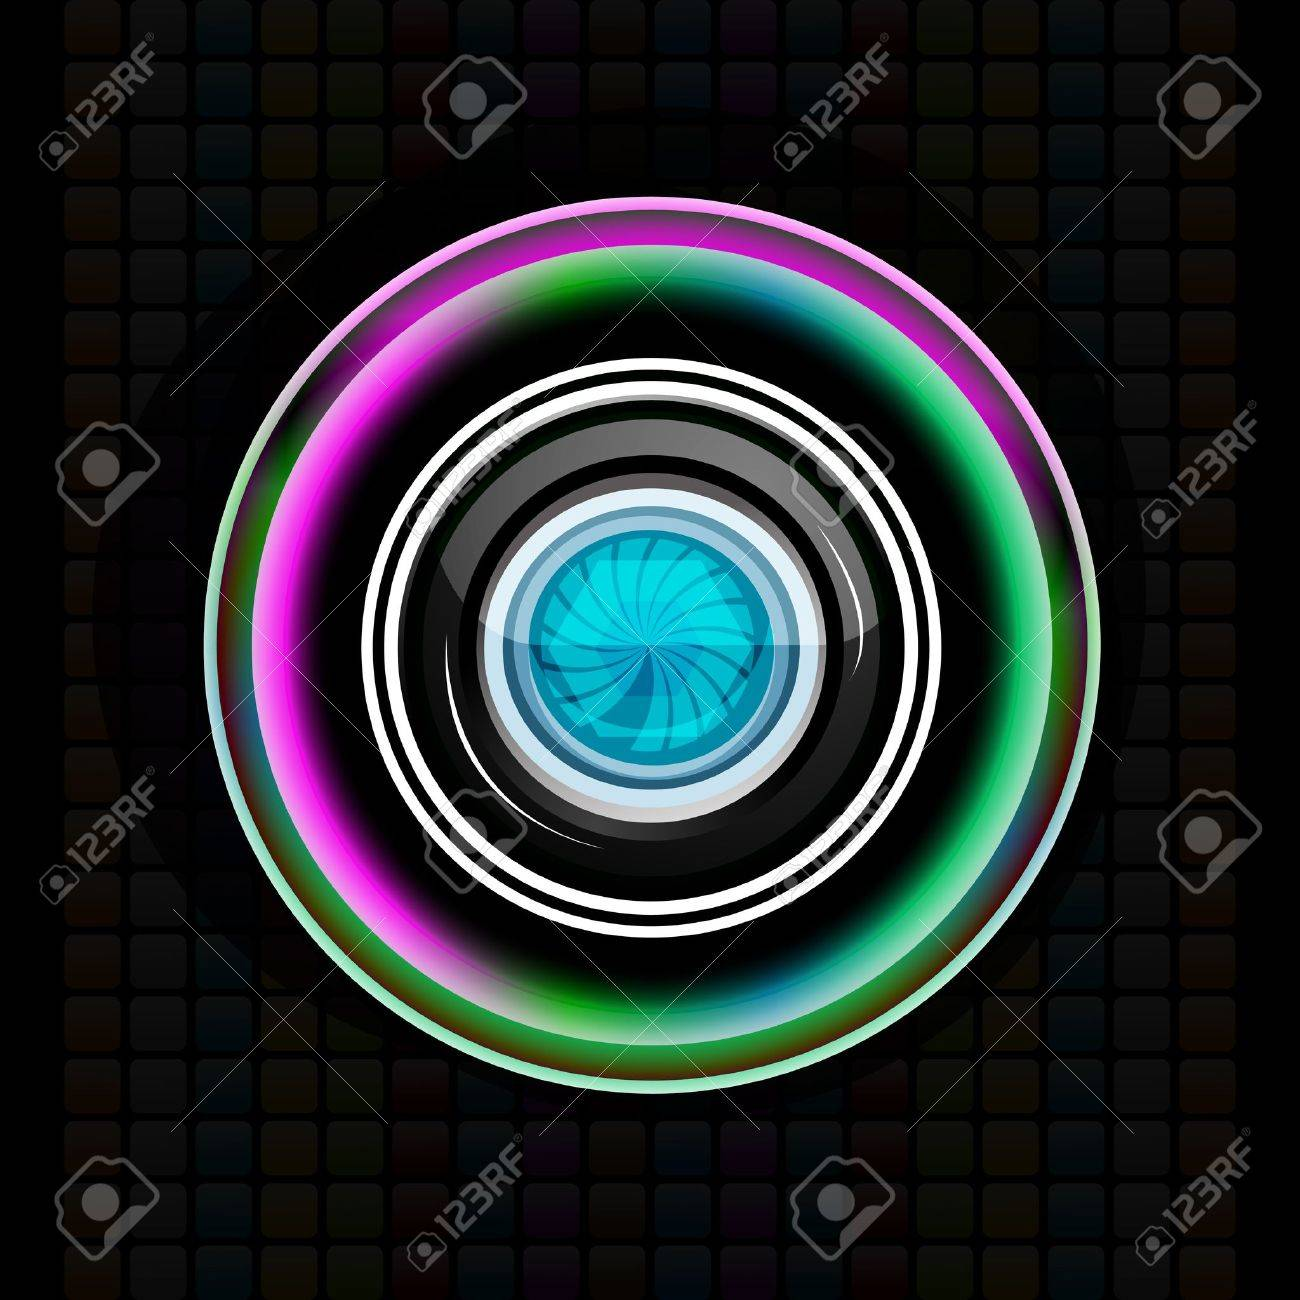 illustration of camera lens on abstract background - 9269535